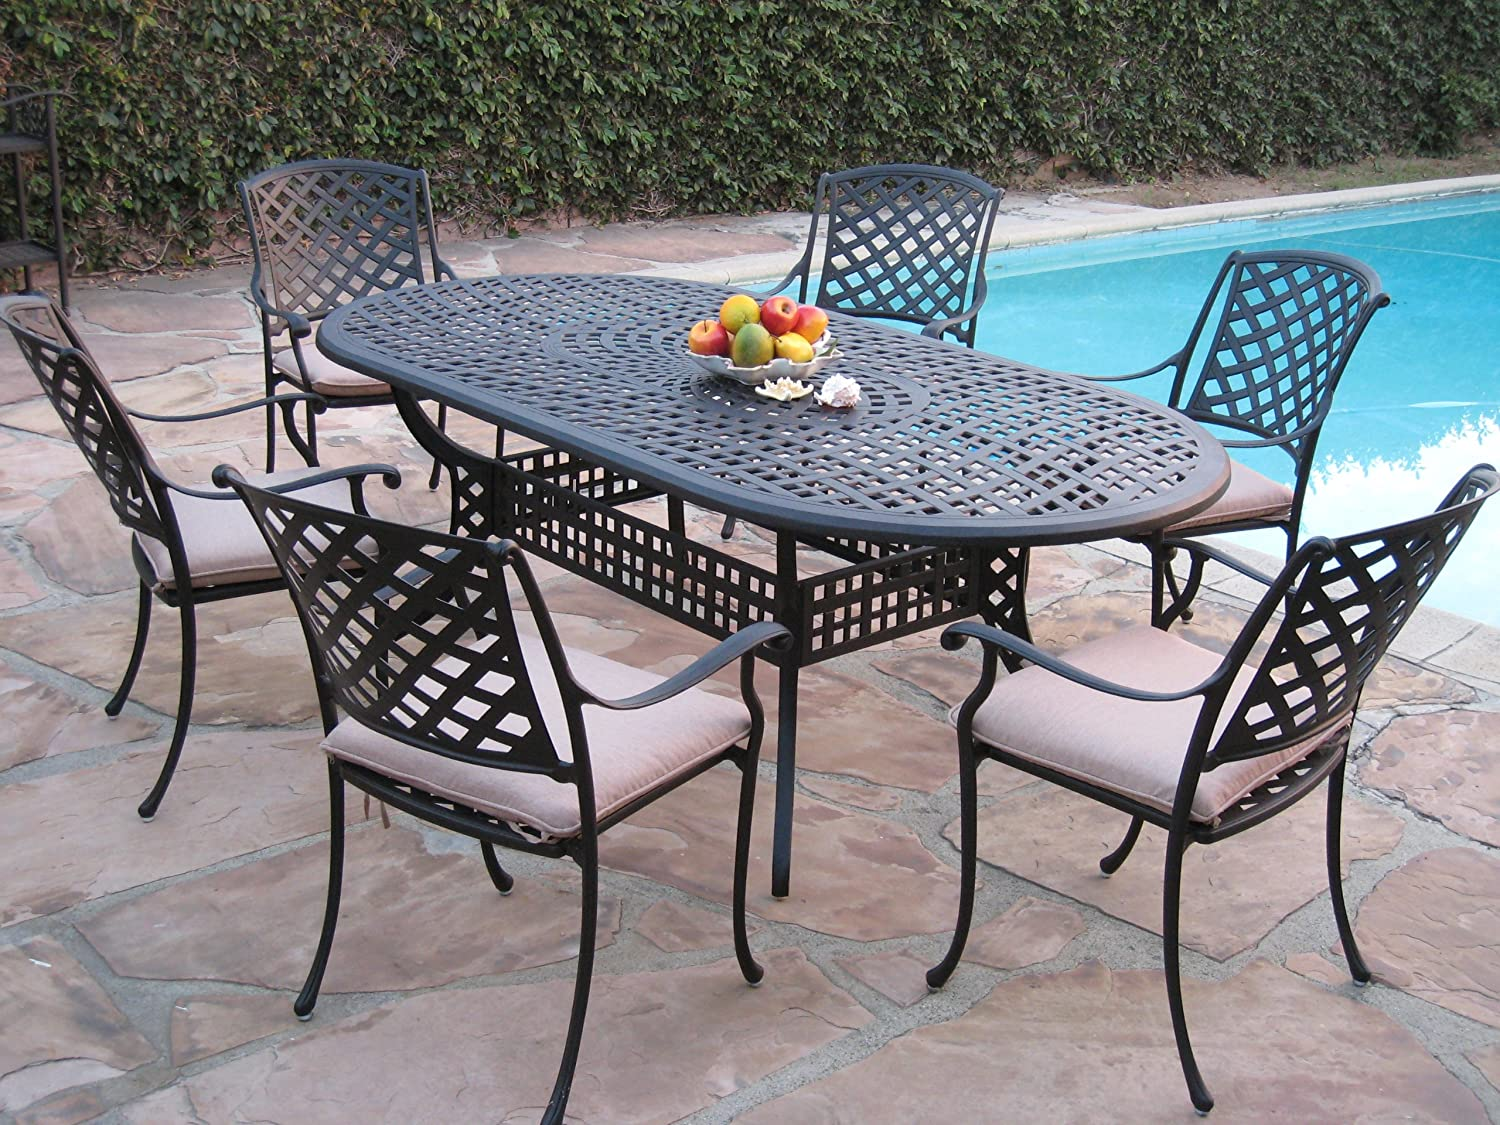 Peachy Details About Kawaii Collection Outdoor Cast Aluminum Patio Furniture 7 Piece Dining Set Mlv42 Home Interior And Landscaping Eliaenasavecom